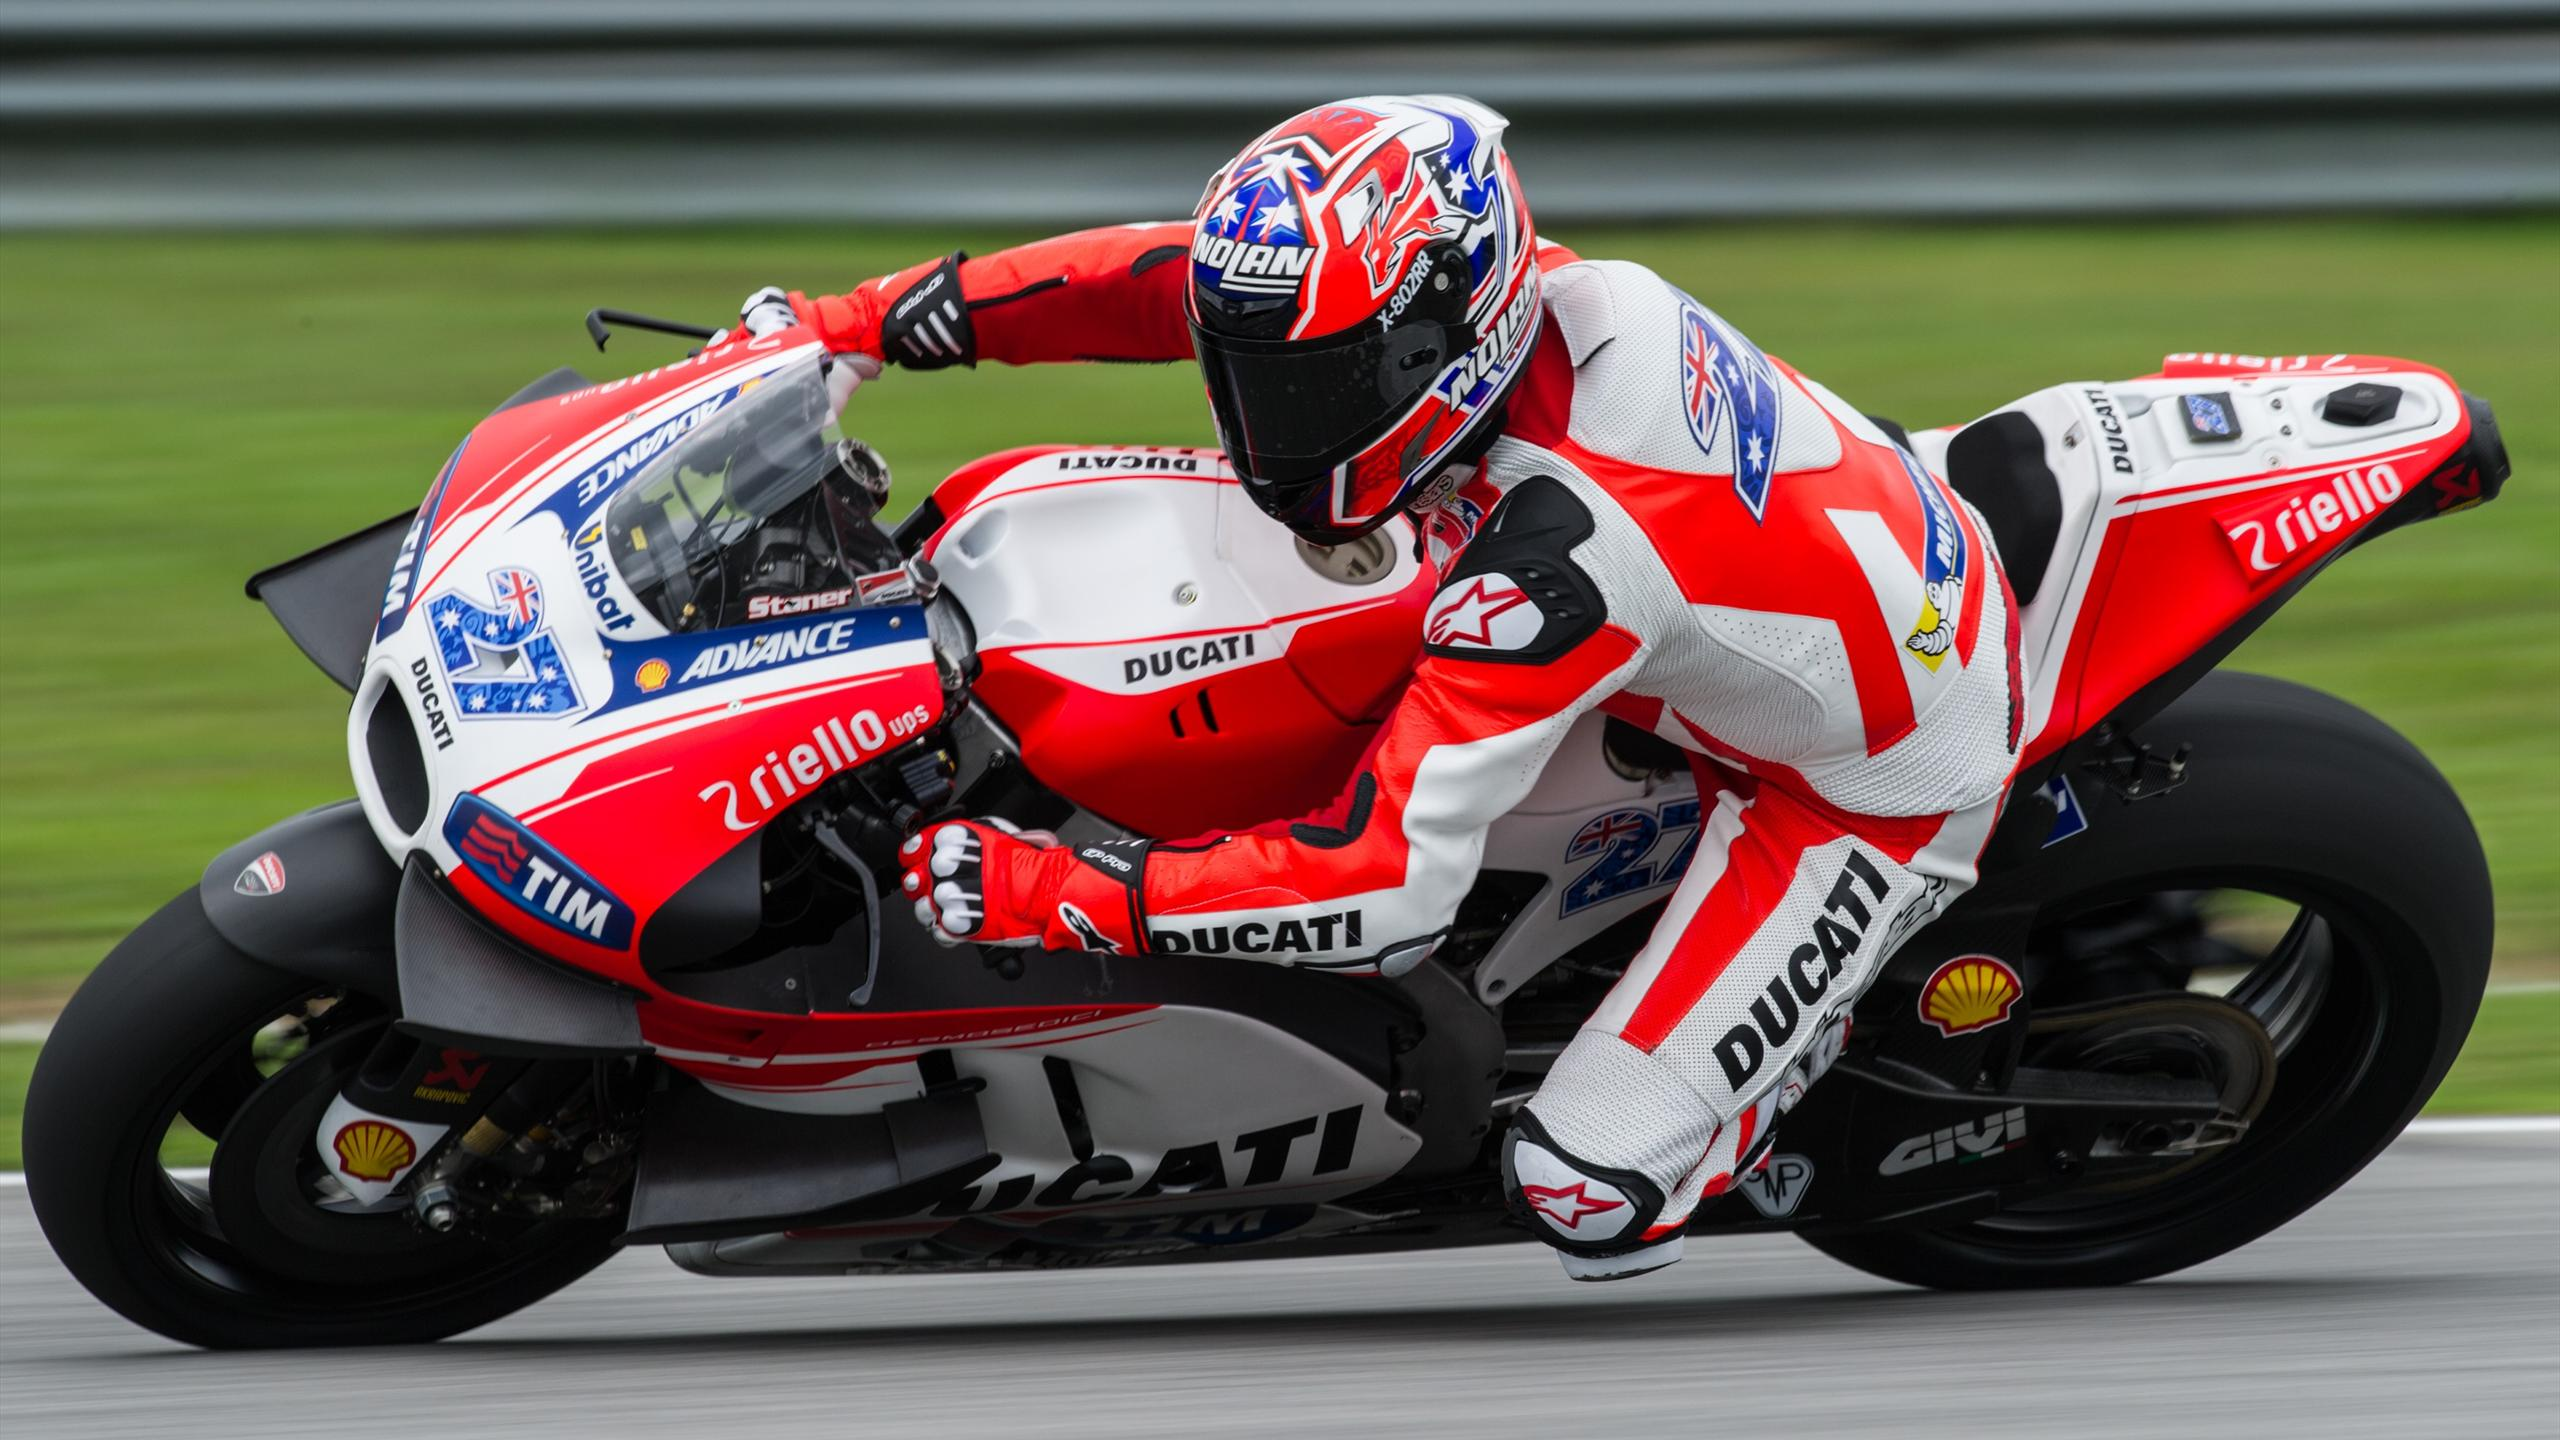 Casey Stoner (Ducati) - Test in Sepang on February 3, 2016